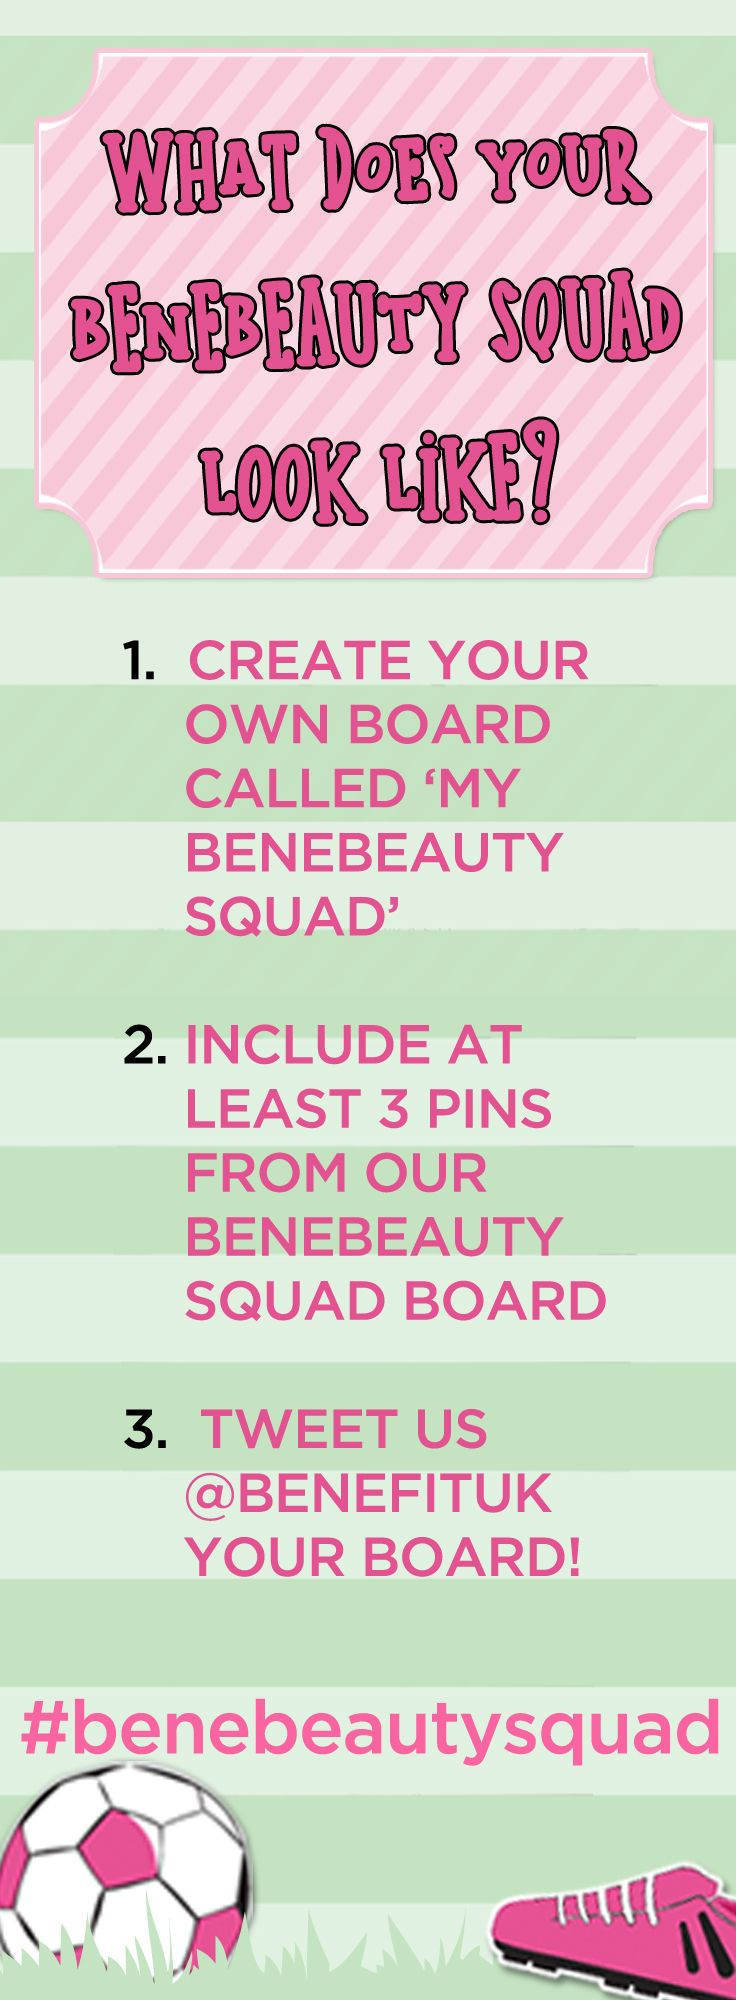 WIN lot of Benegoodies! Follow the instructions on the pin and create your own #benebeautysquad board to be in with a chance to win. Remember to pin THIS pin! Good luck!